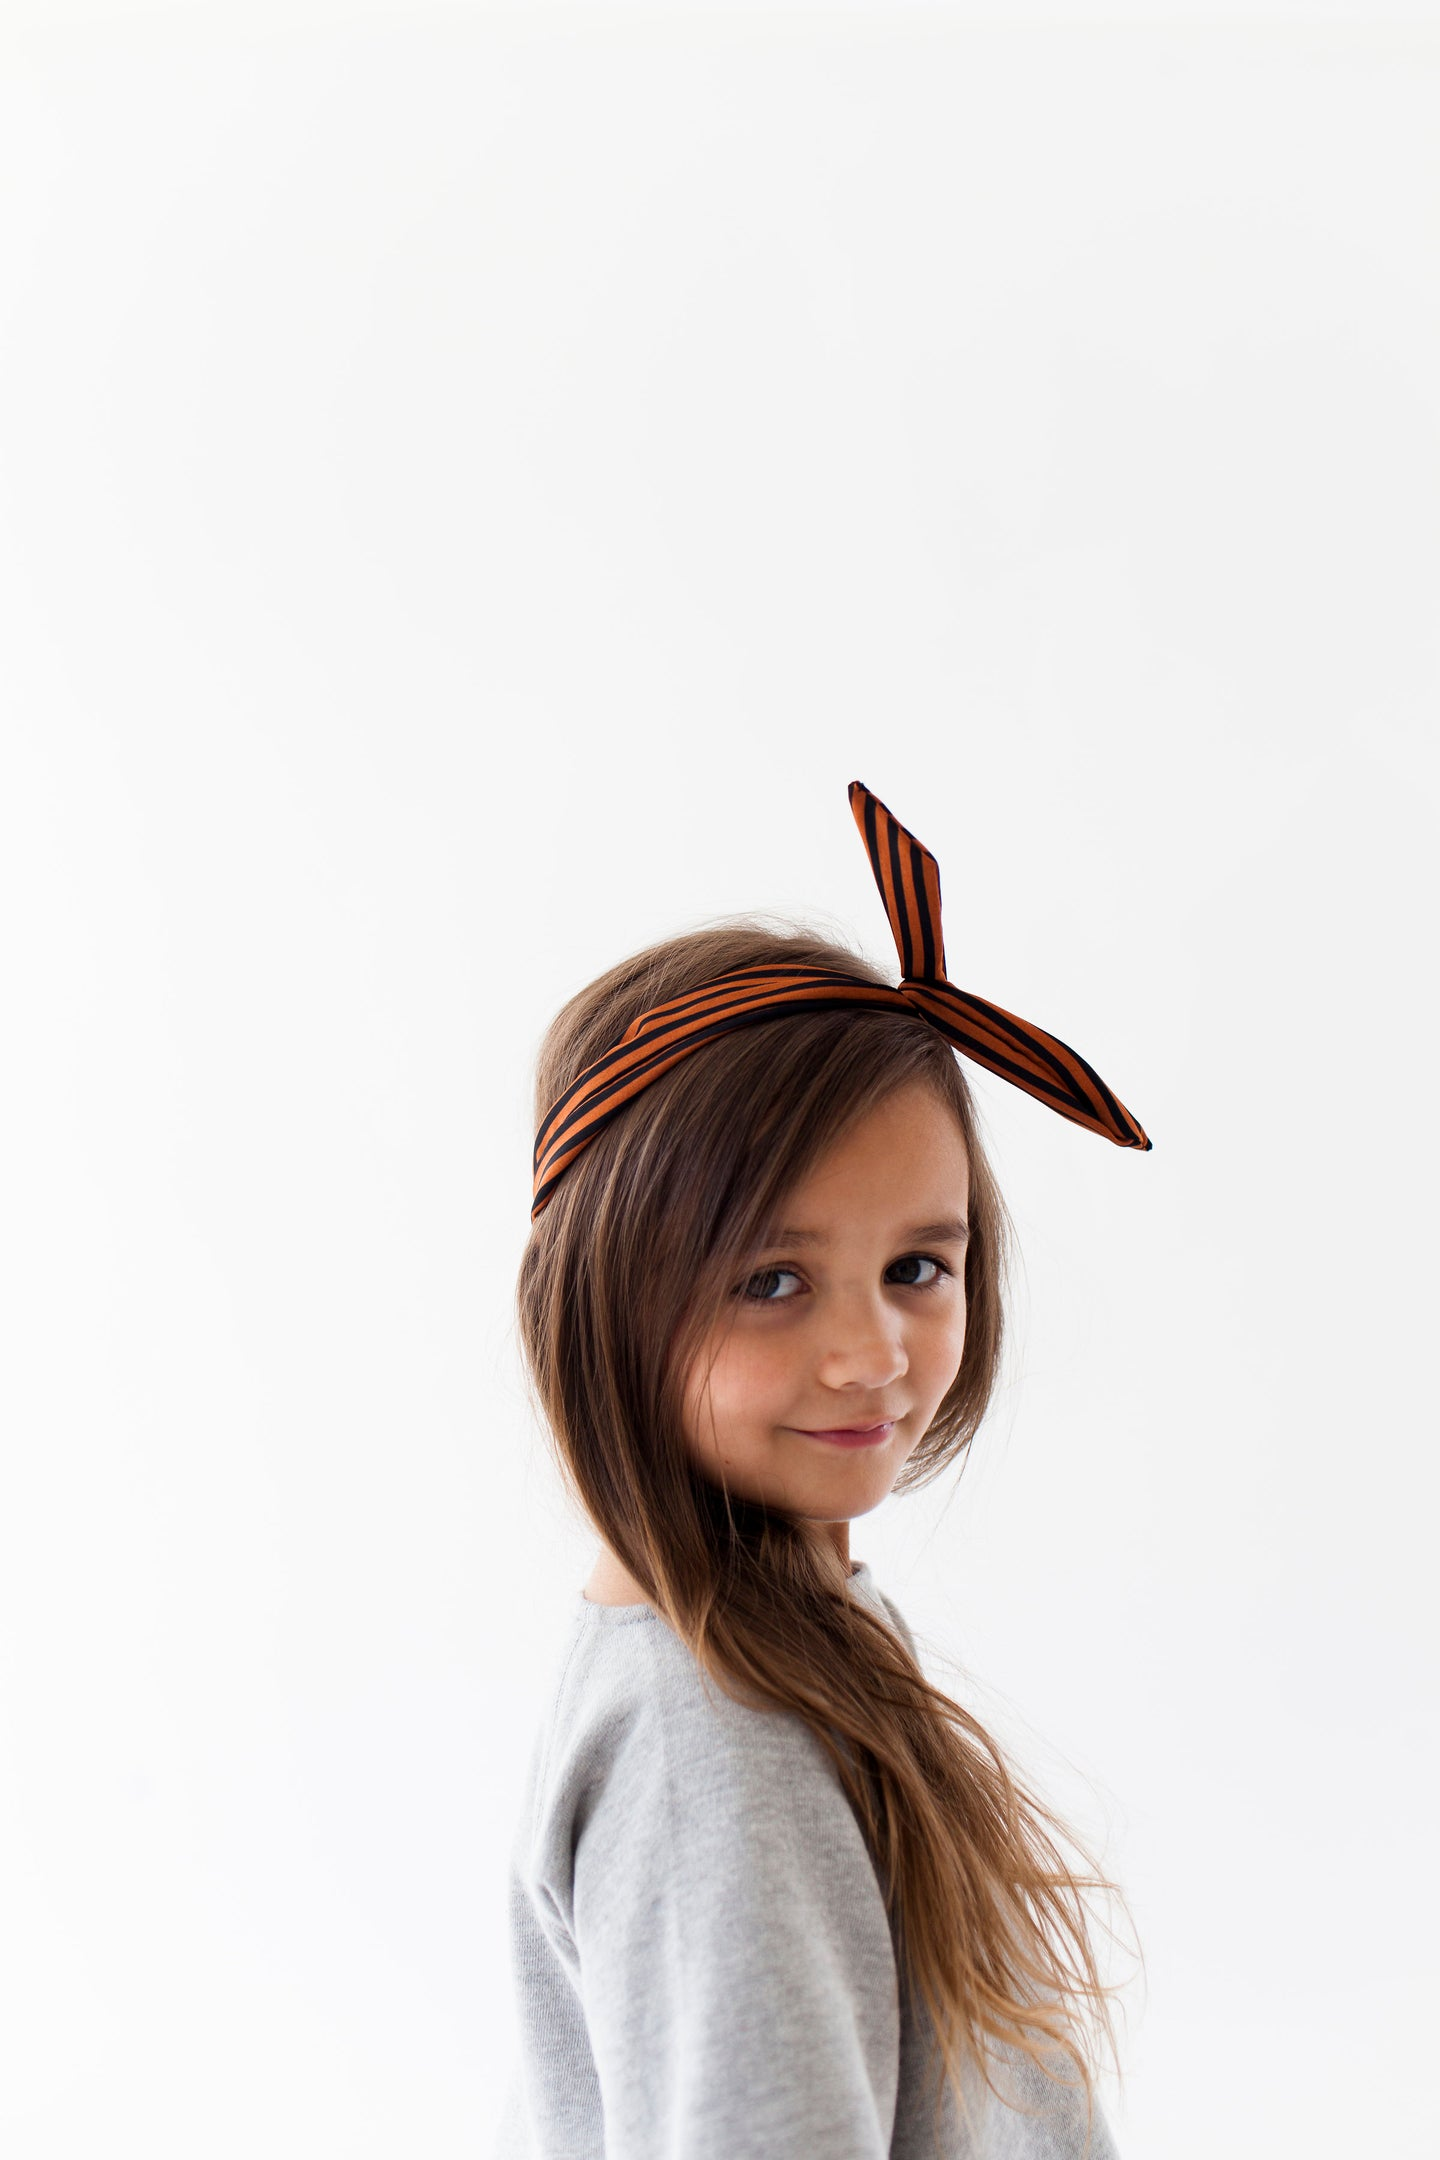 BLACK AND BROWN HEADBAND